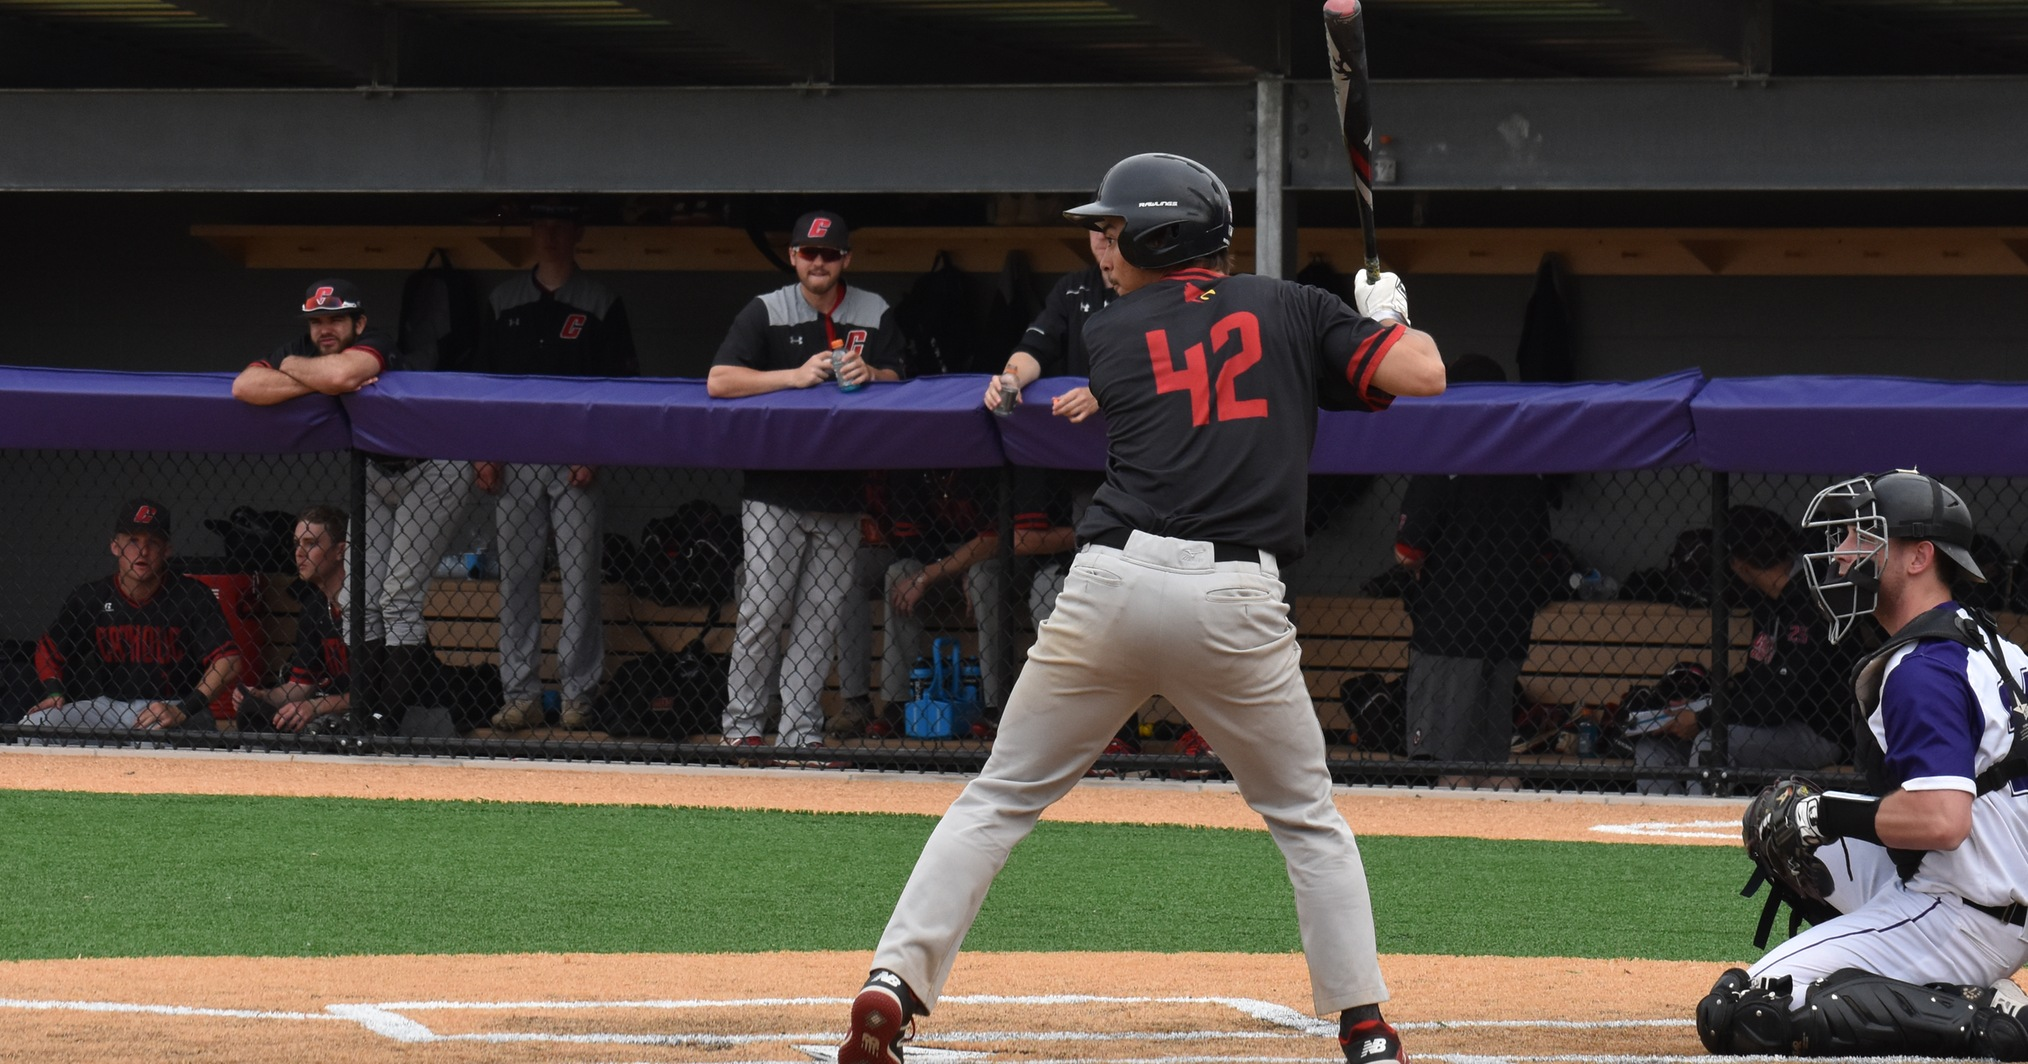 Cardinals Down Greyhounds on Day One of Landmarks